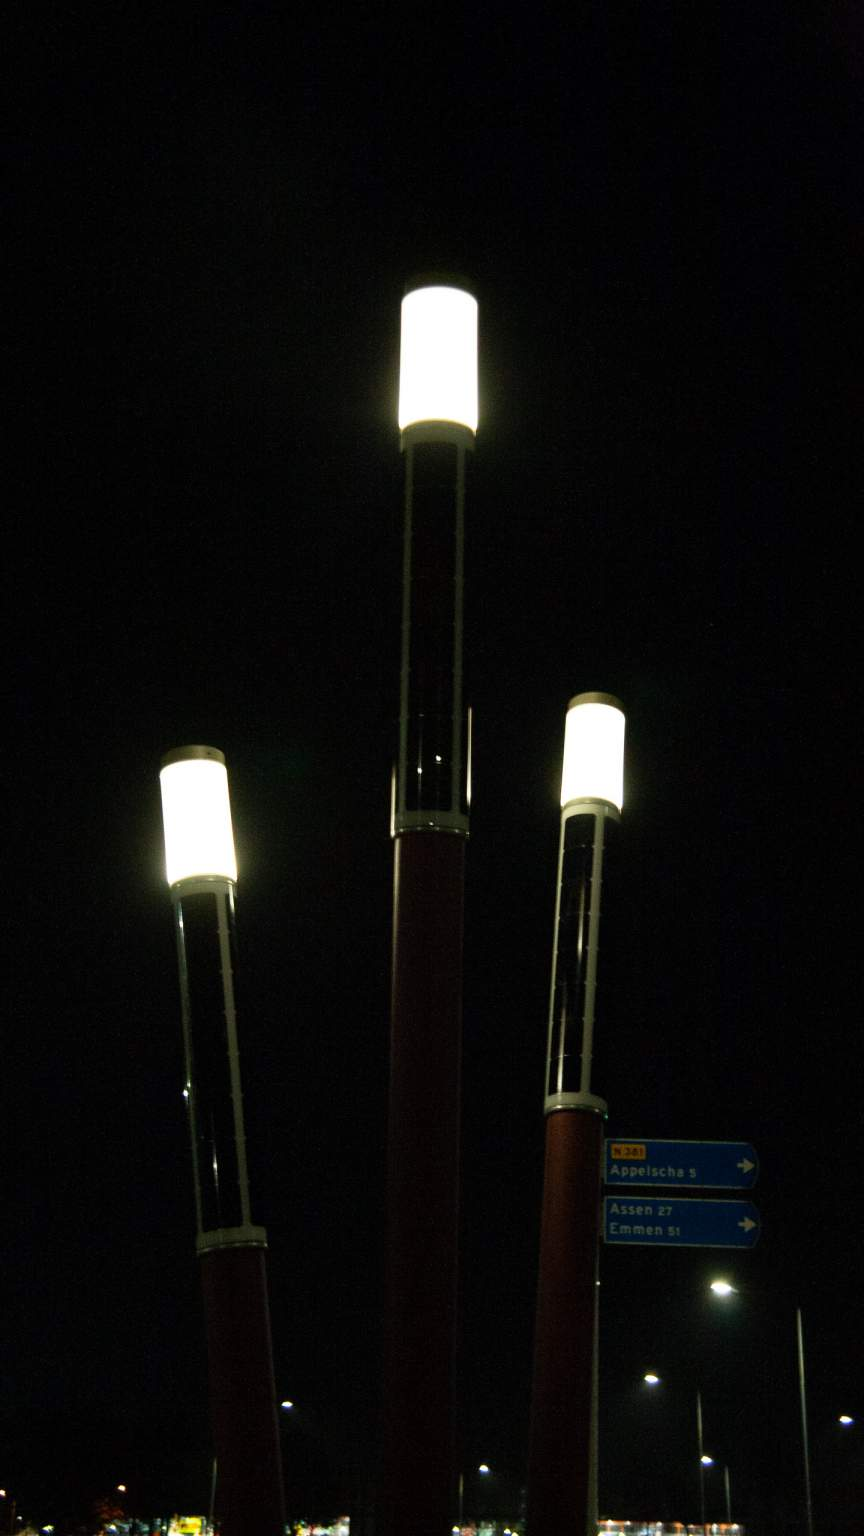 Soluxio Lightsticks with white light in Friesland, Holland